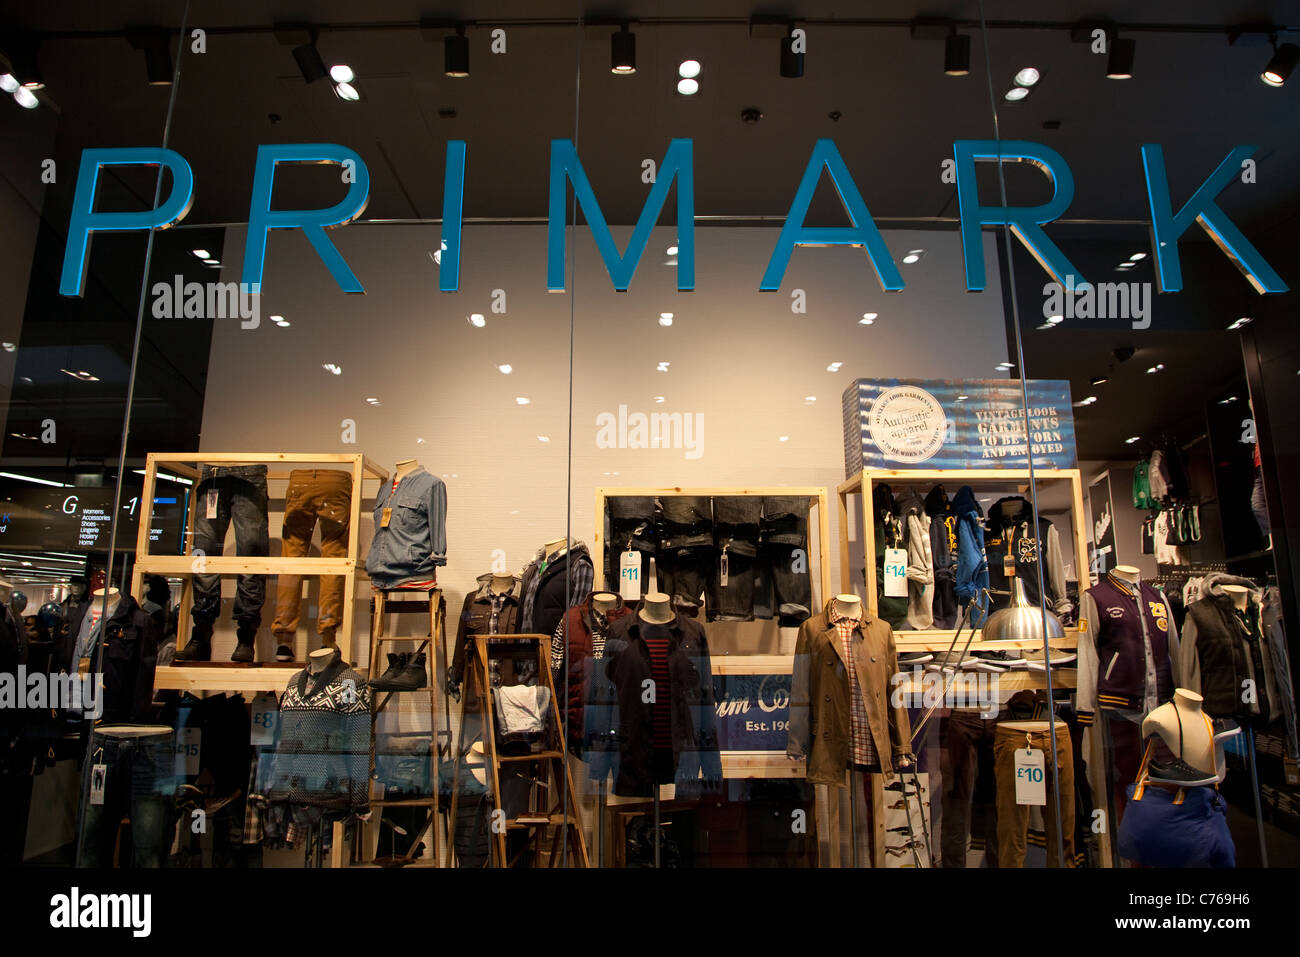 Westfield Stratford City shopping centre, London - Primark window display - Stock Image